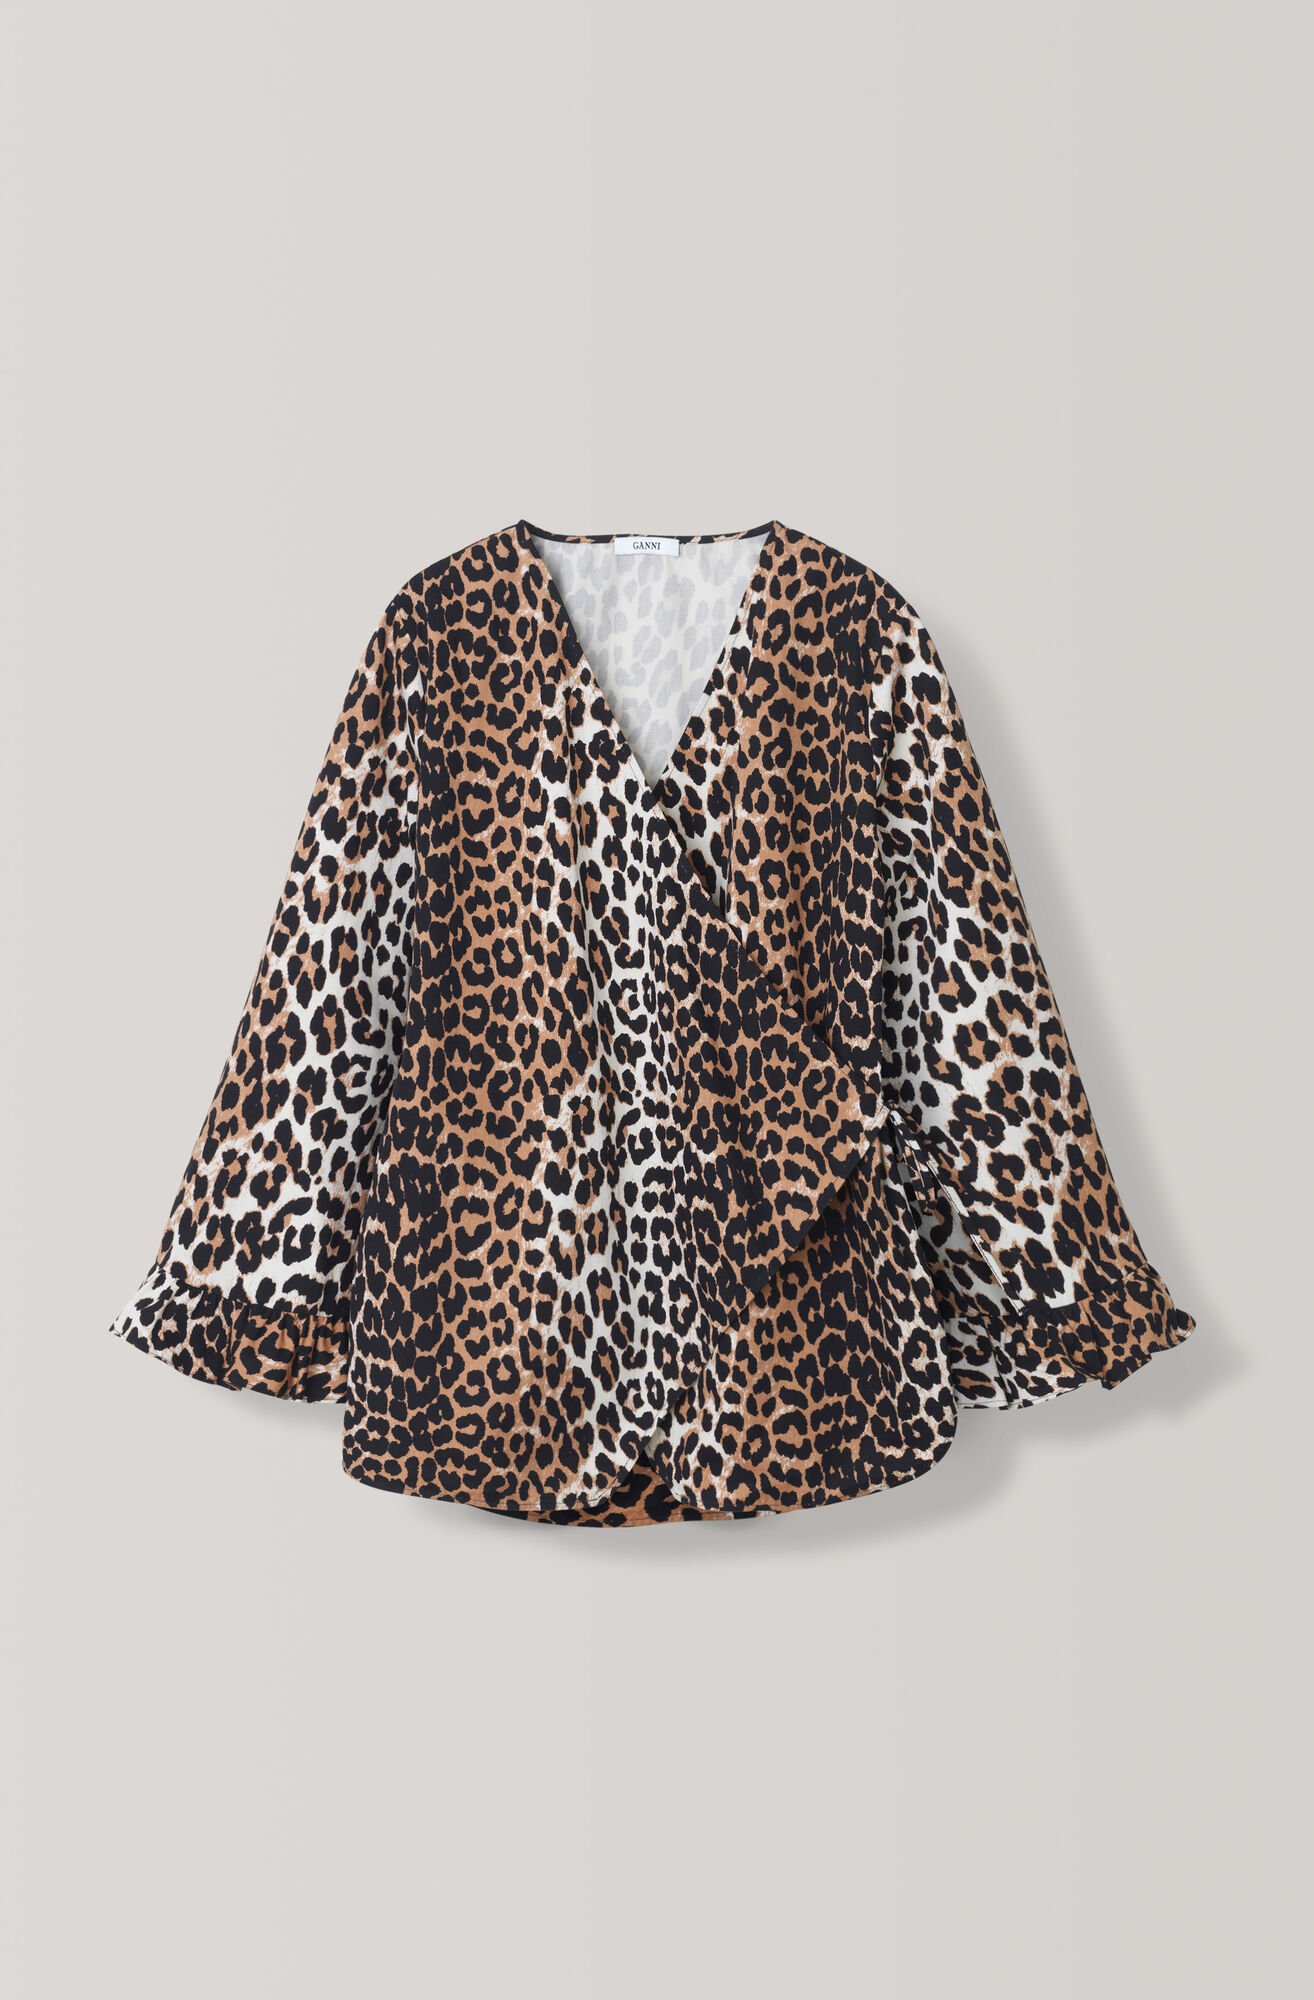 Fabre Cotton Blouse, Leopard, hi-res